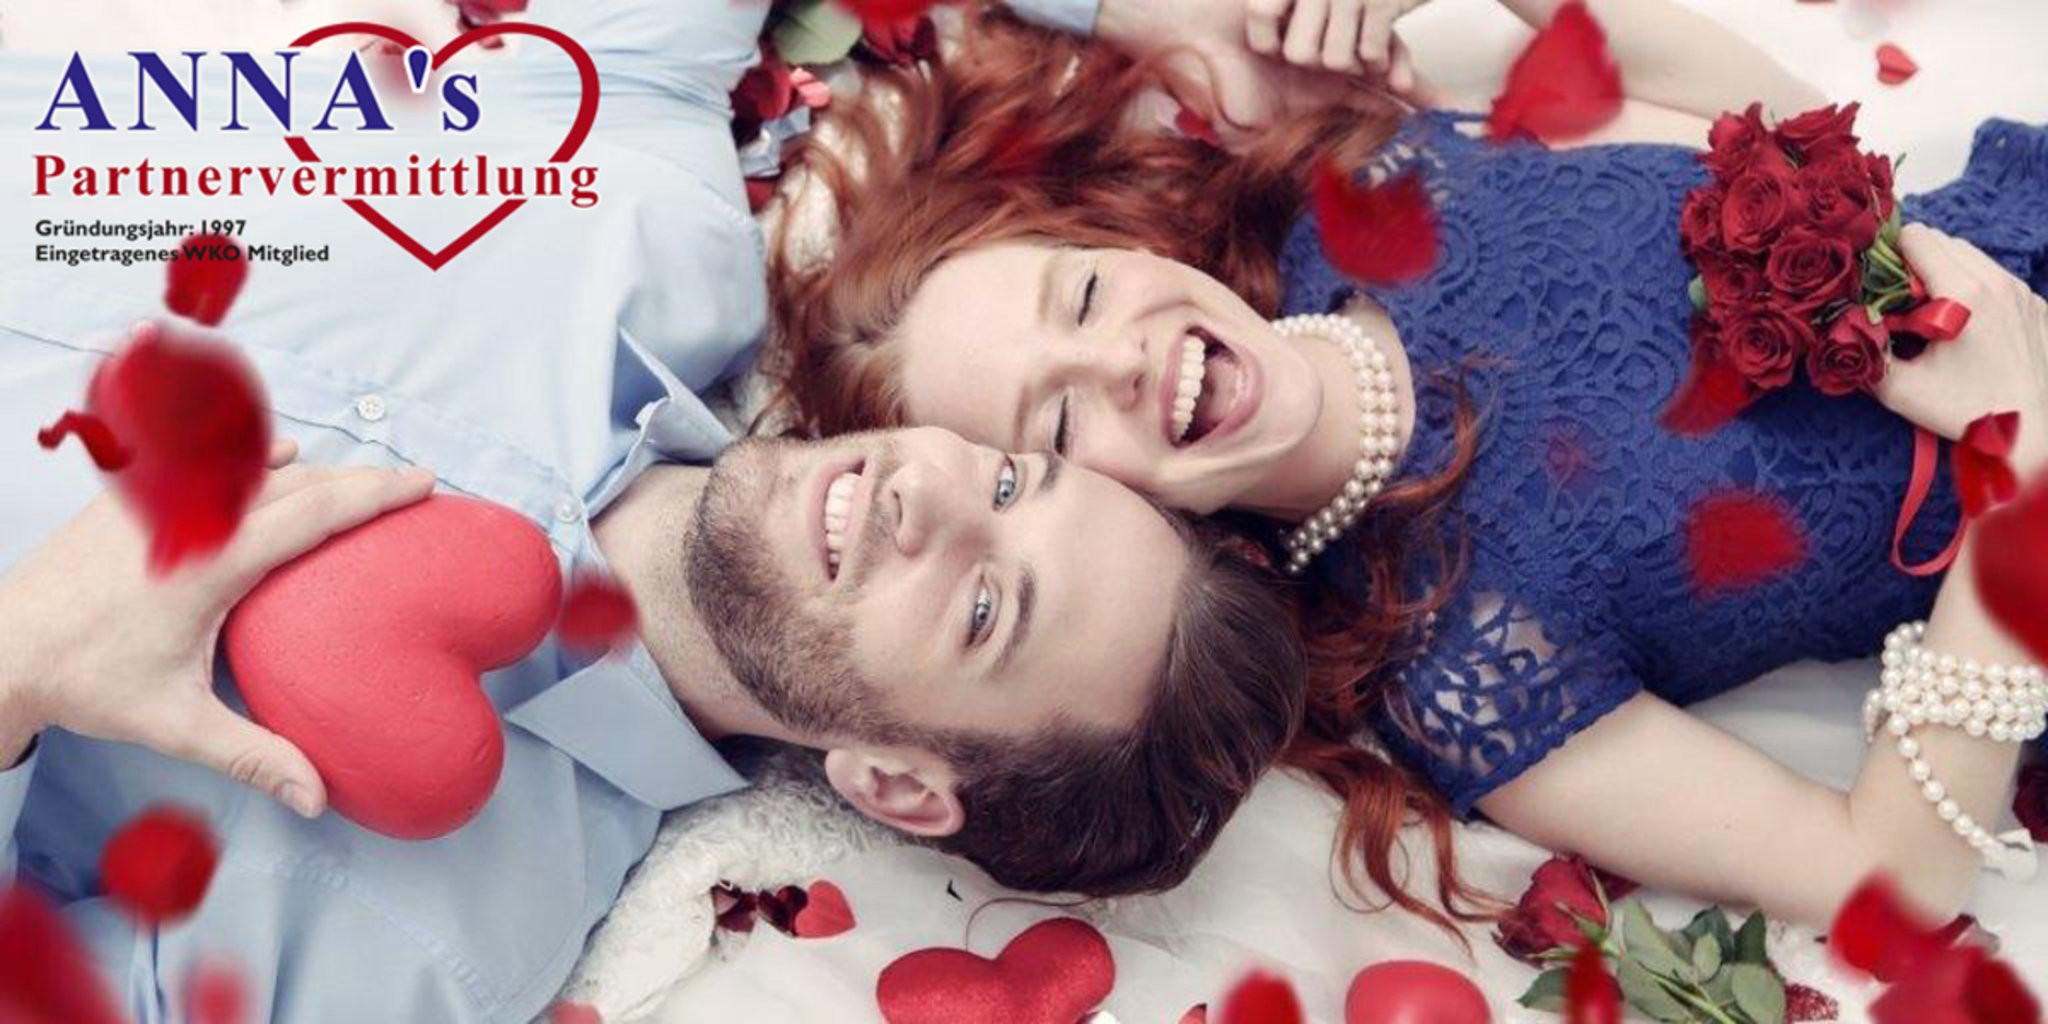 Persenbeug-gottsdorf single mnner bezirk: Dating events